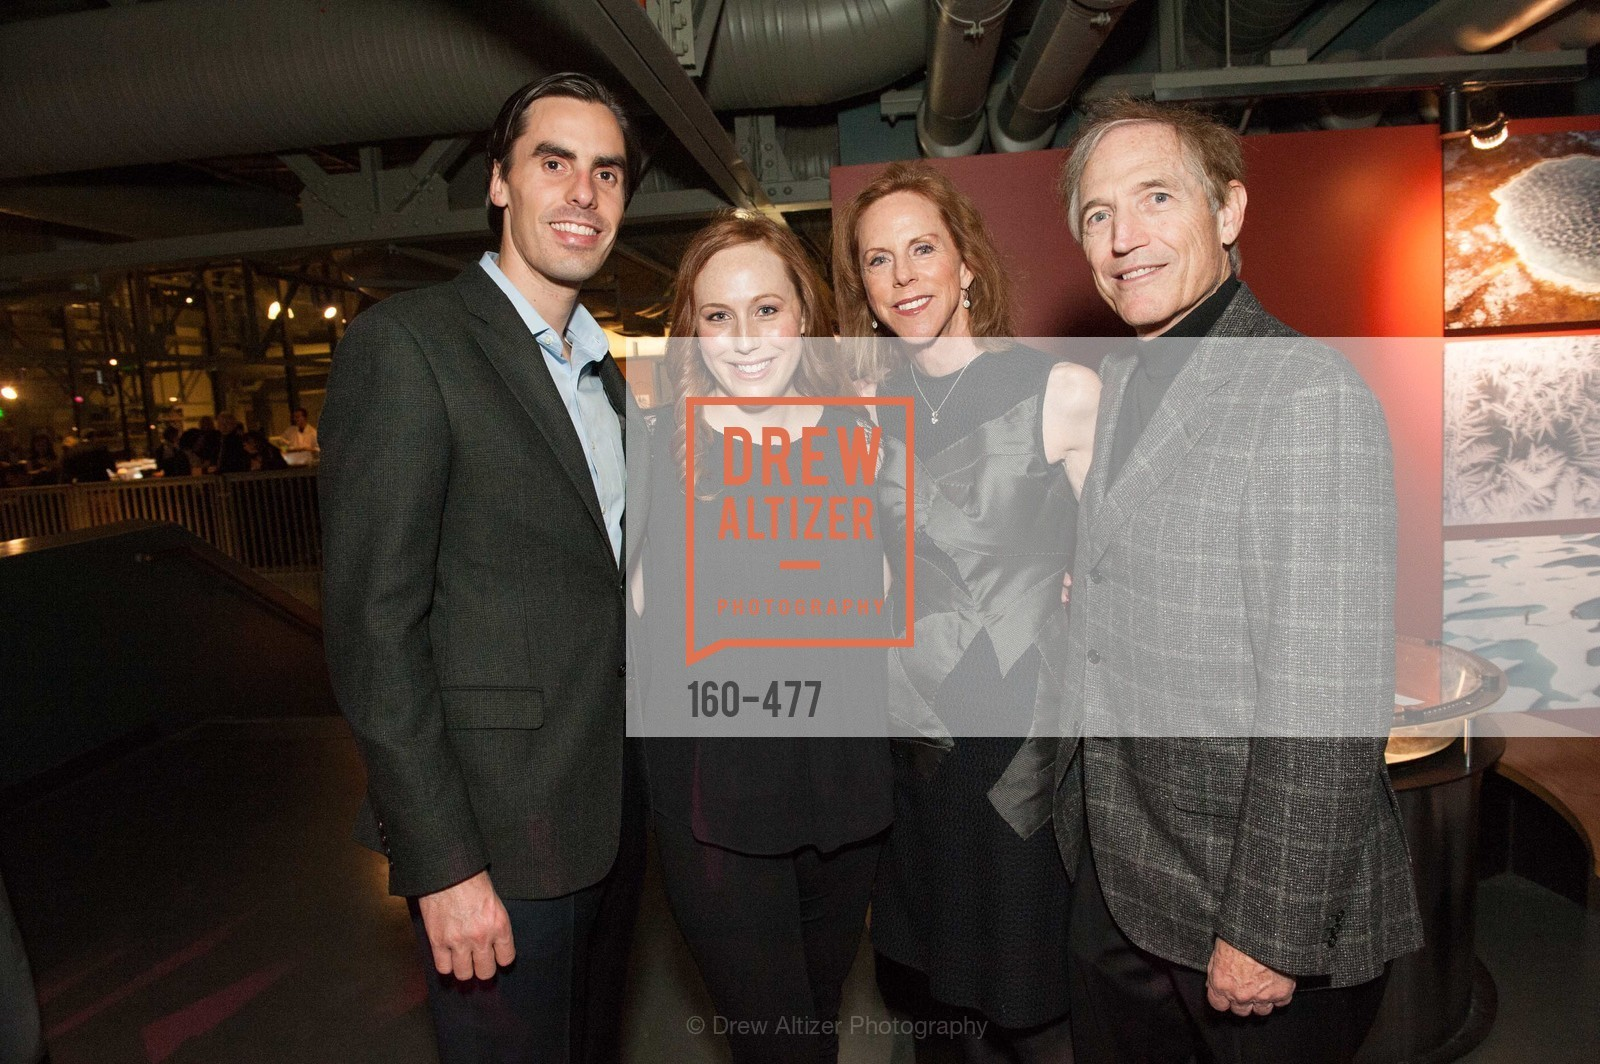 Spencer Rawls, Gretchen Rawls, Sally Robinson, John Robinson, THE EXPLORATORIUM LAB Presents 2014 Science of Cocktails, US. US, January 24th, 2014,Drew Altizer, Drew Altizer Photography, full-service event agency, private events, San Francisco photographer, photographer California